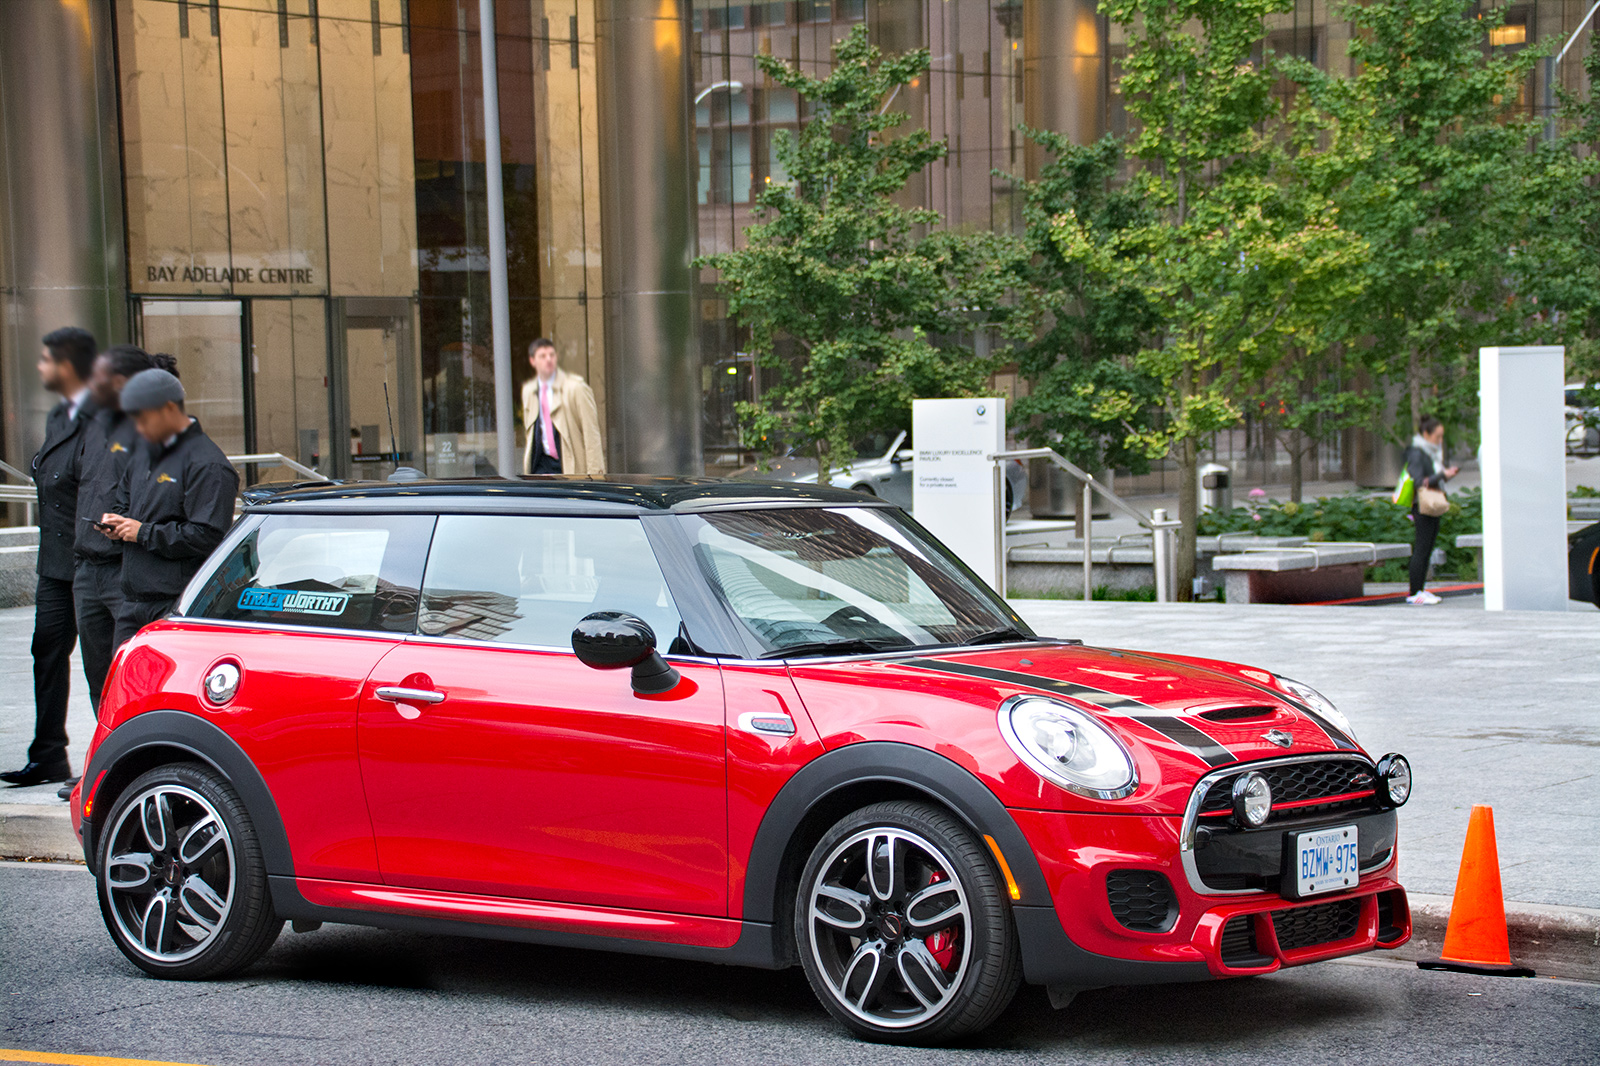 TrackWorthy-2017-MINI-John-Cooper-Works-3-Door-in-Chili-Red-13